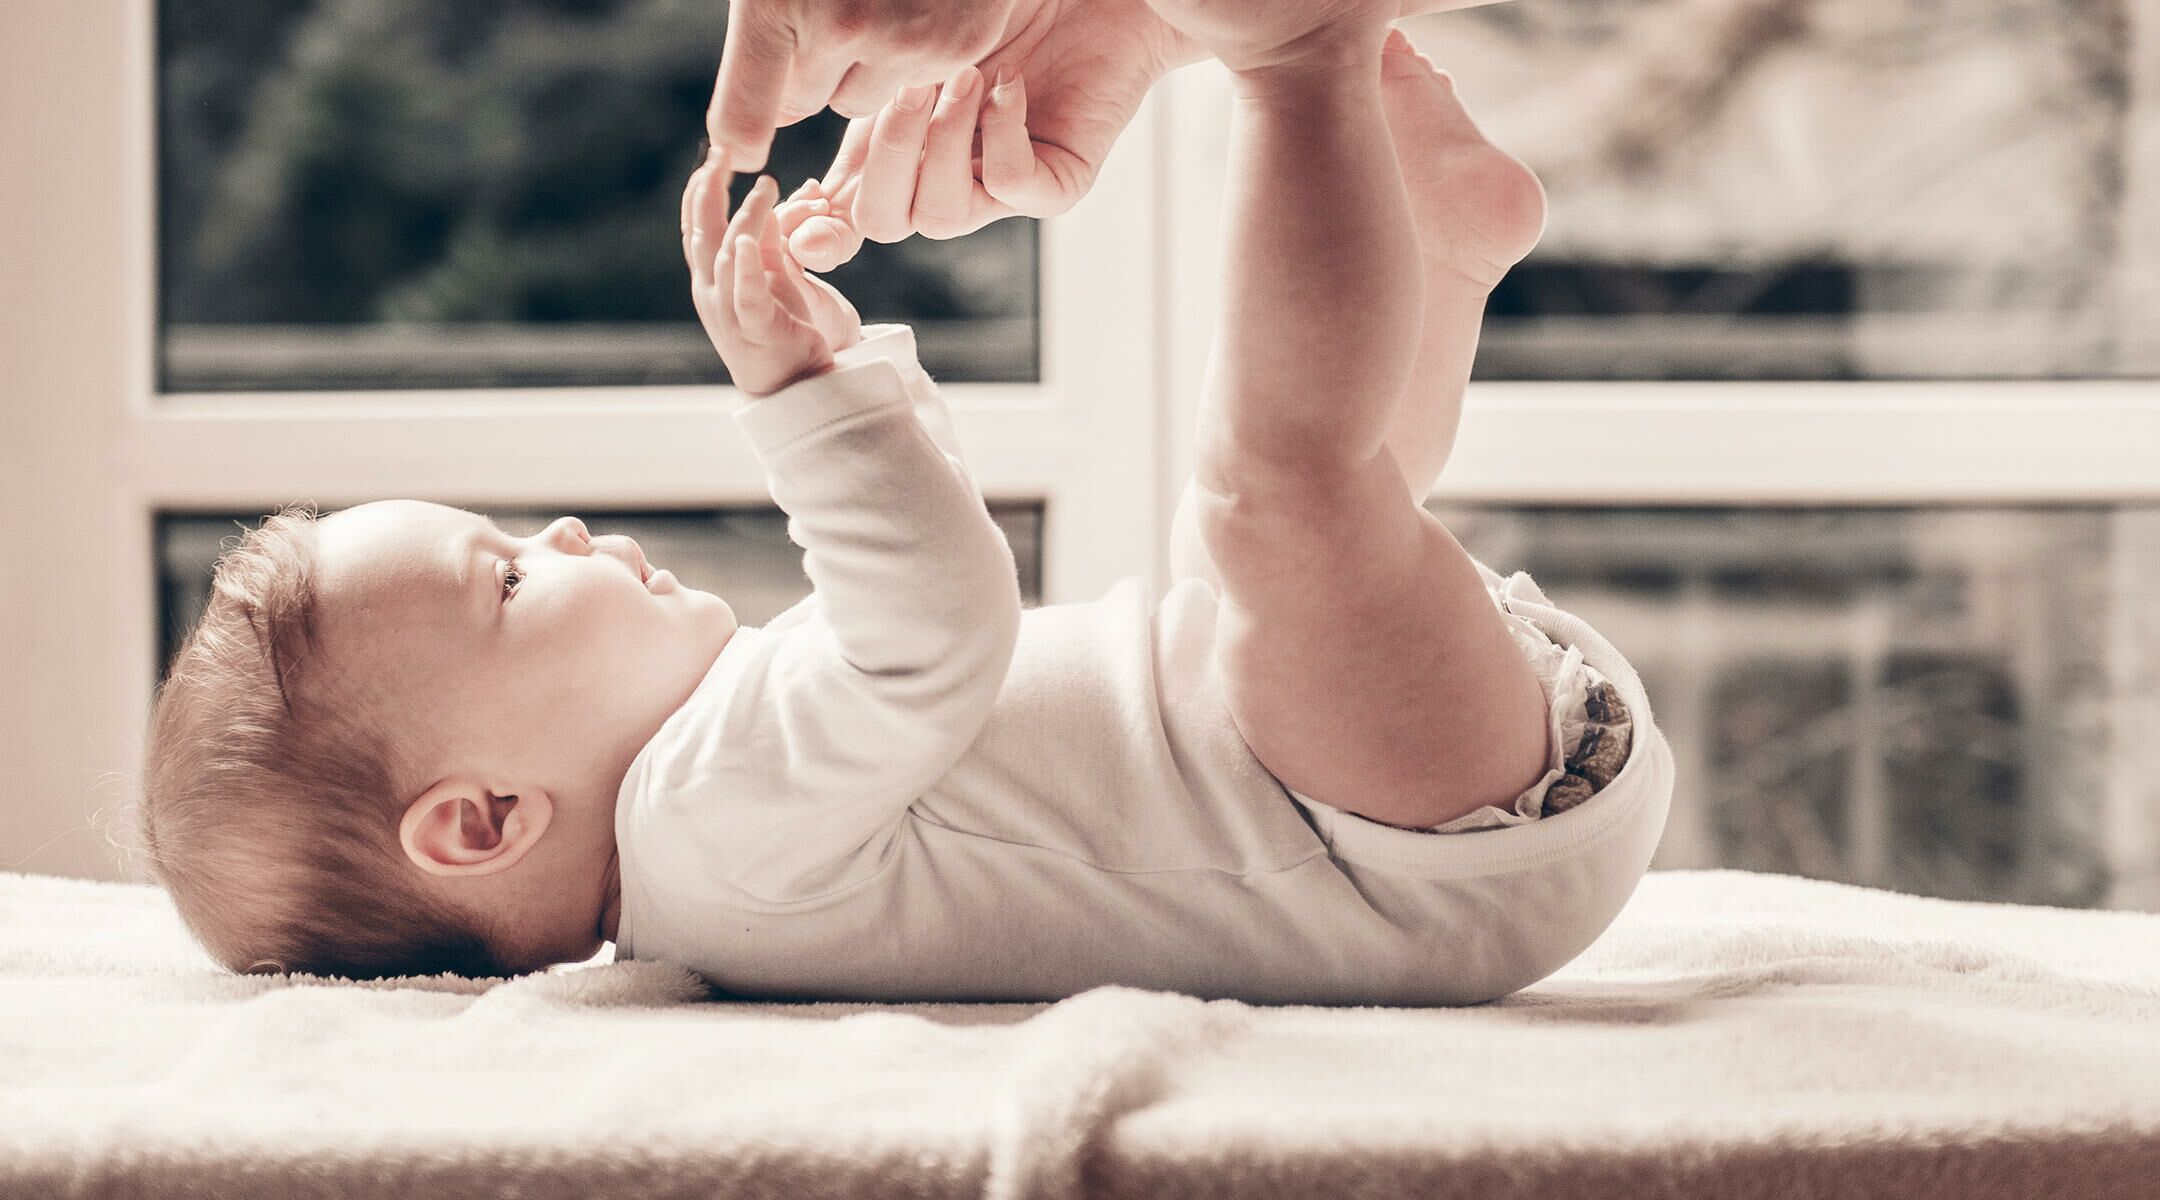 Q&A: My baby has green poop, now what?